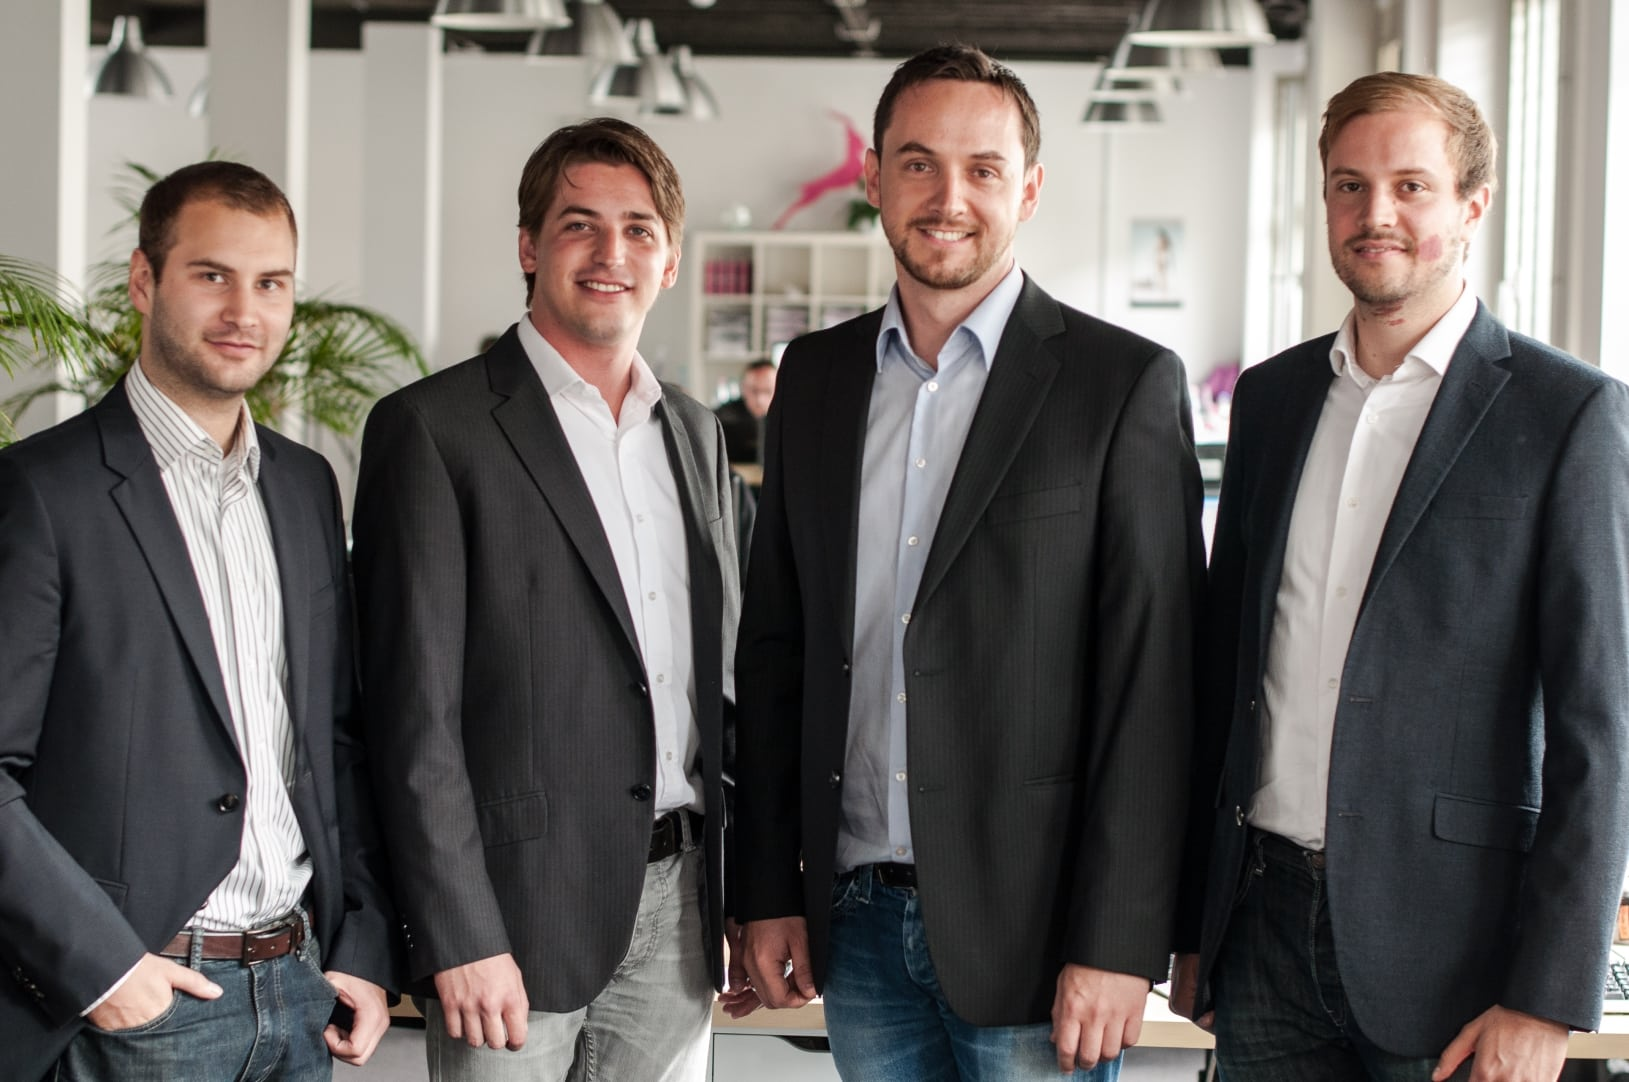 The Founders of Signavio – from left: Torben Schreiter, Nicolas Peters, Willi Tscheschner, Gero Decker